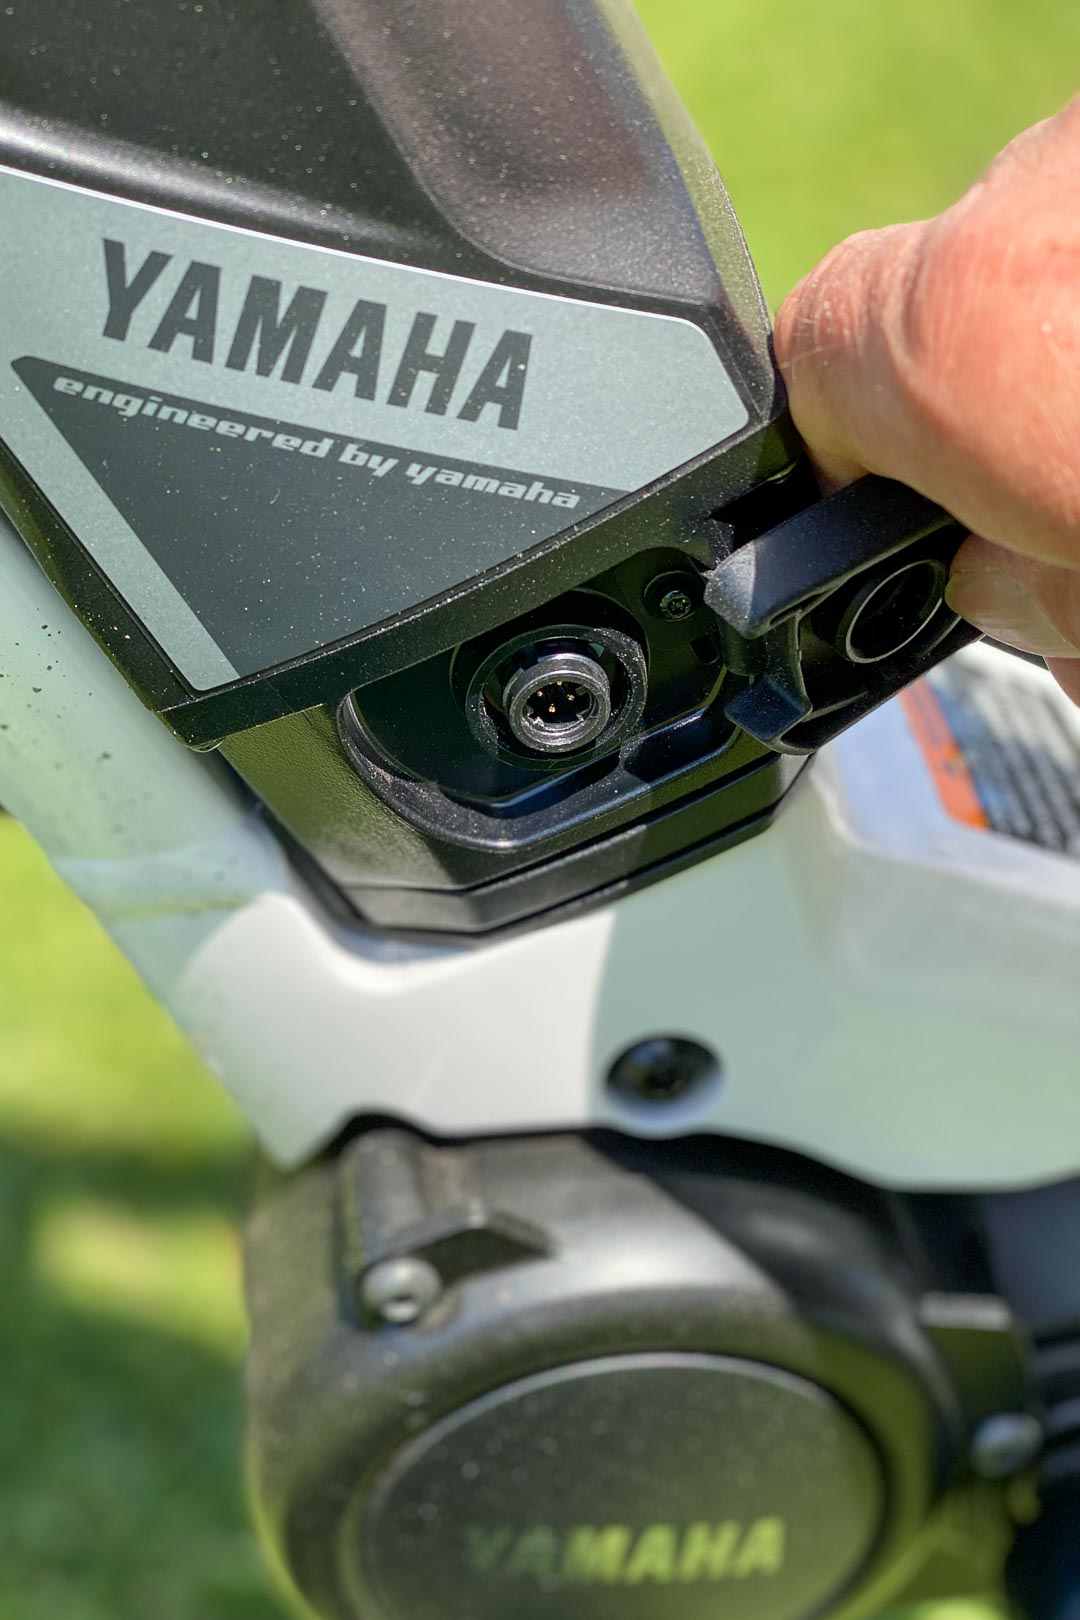 Yamaha Power Assist Bicycles - MSRP